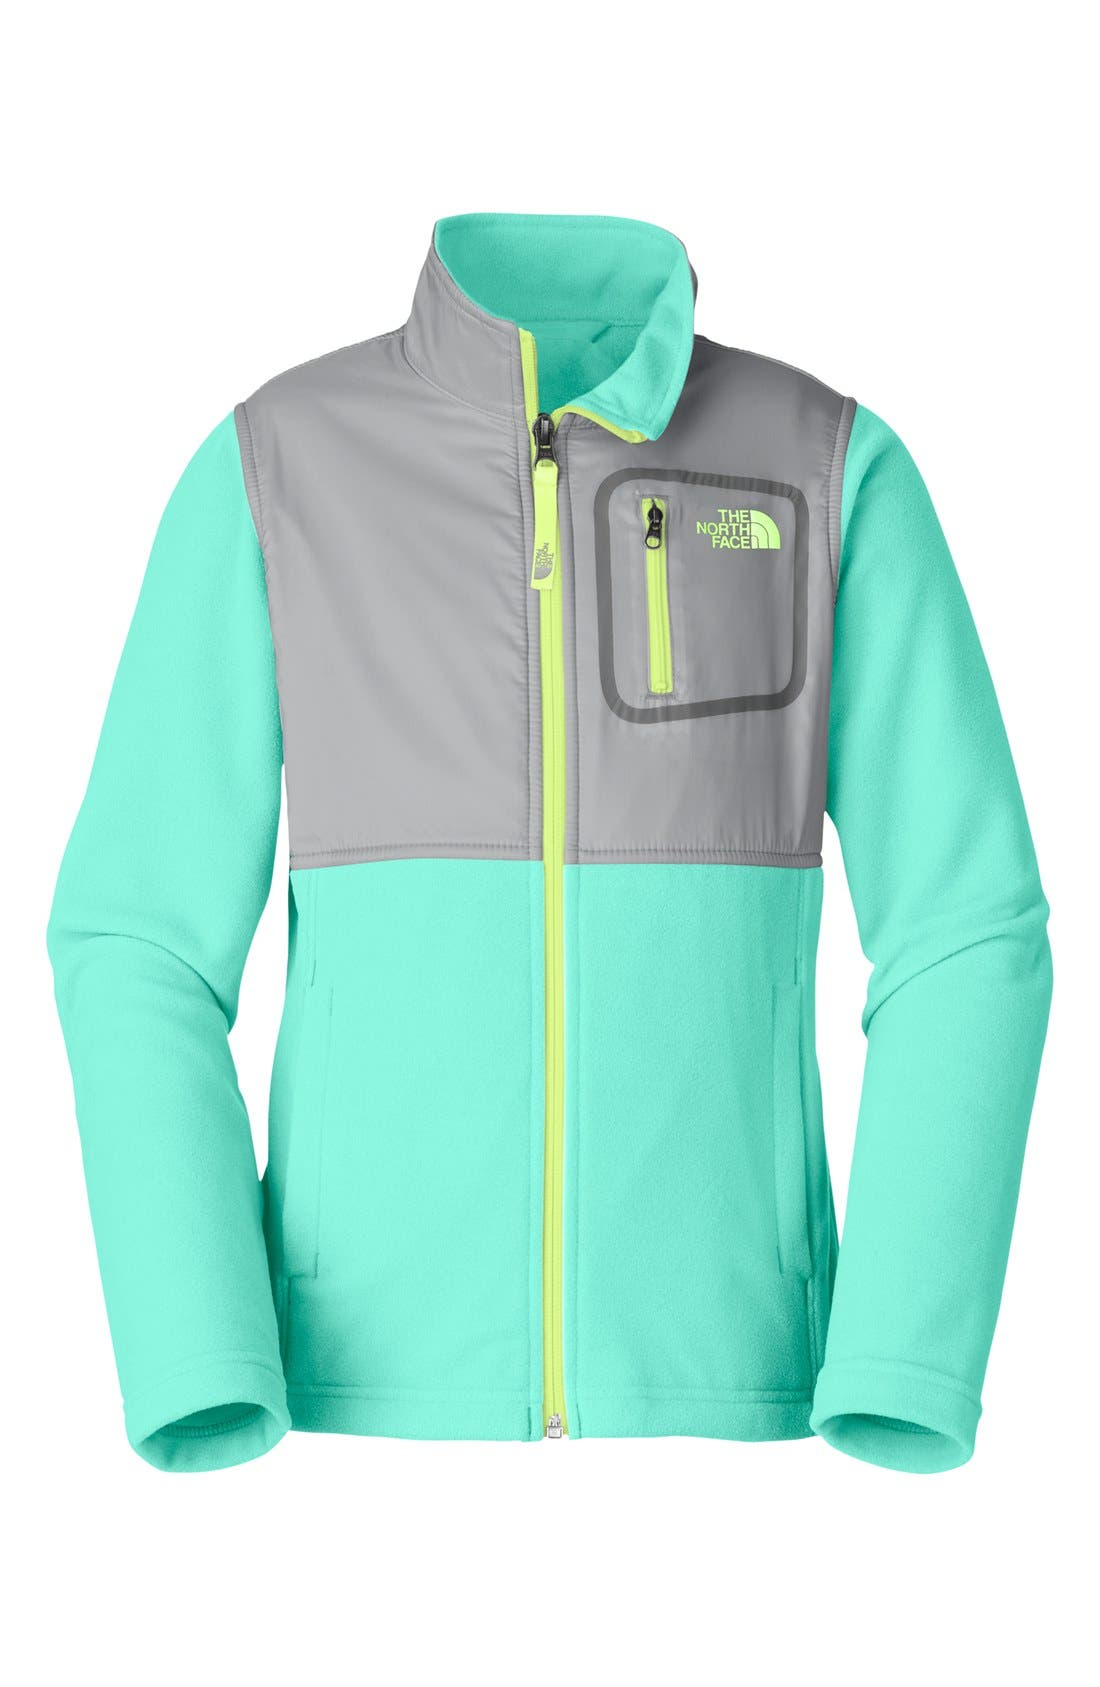 Alternate Image 1 Selected - The North Face 'Glacier' Jacket (Little Girls & Big Girls)